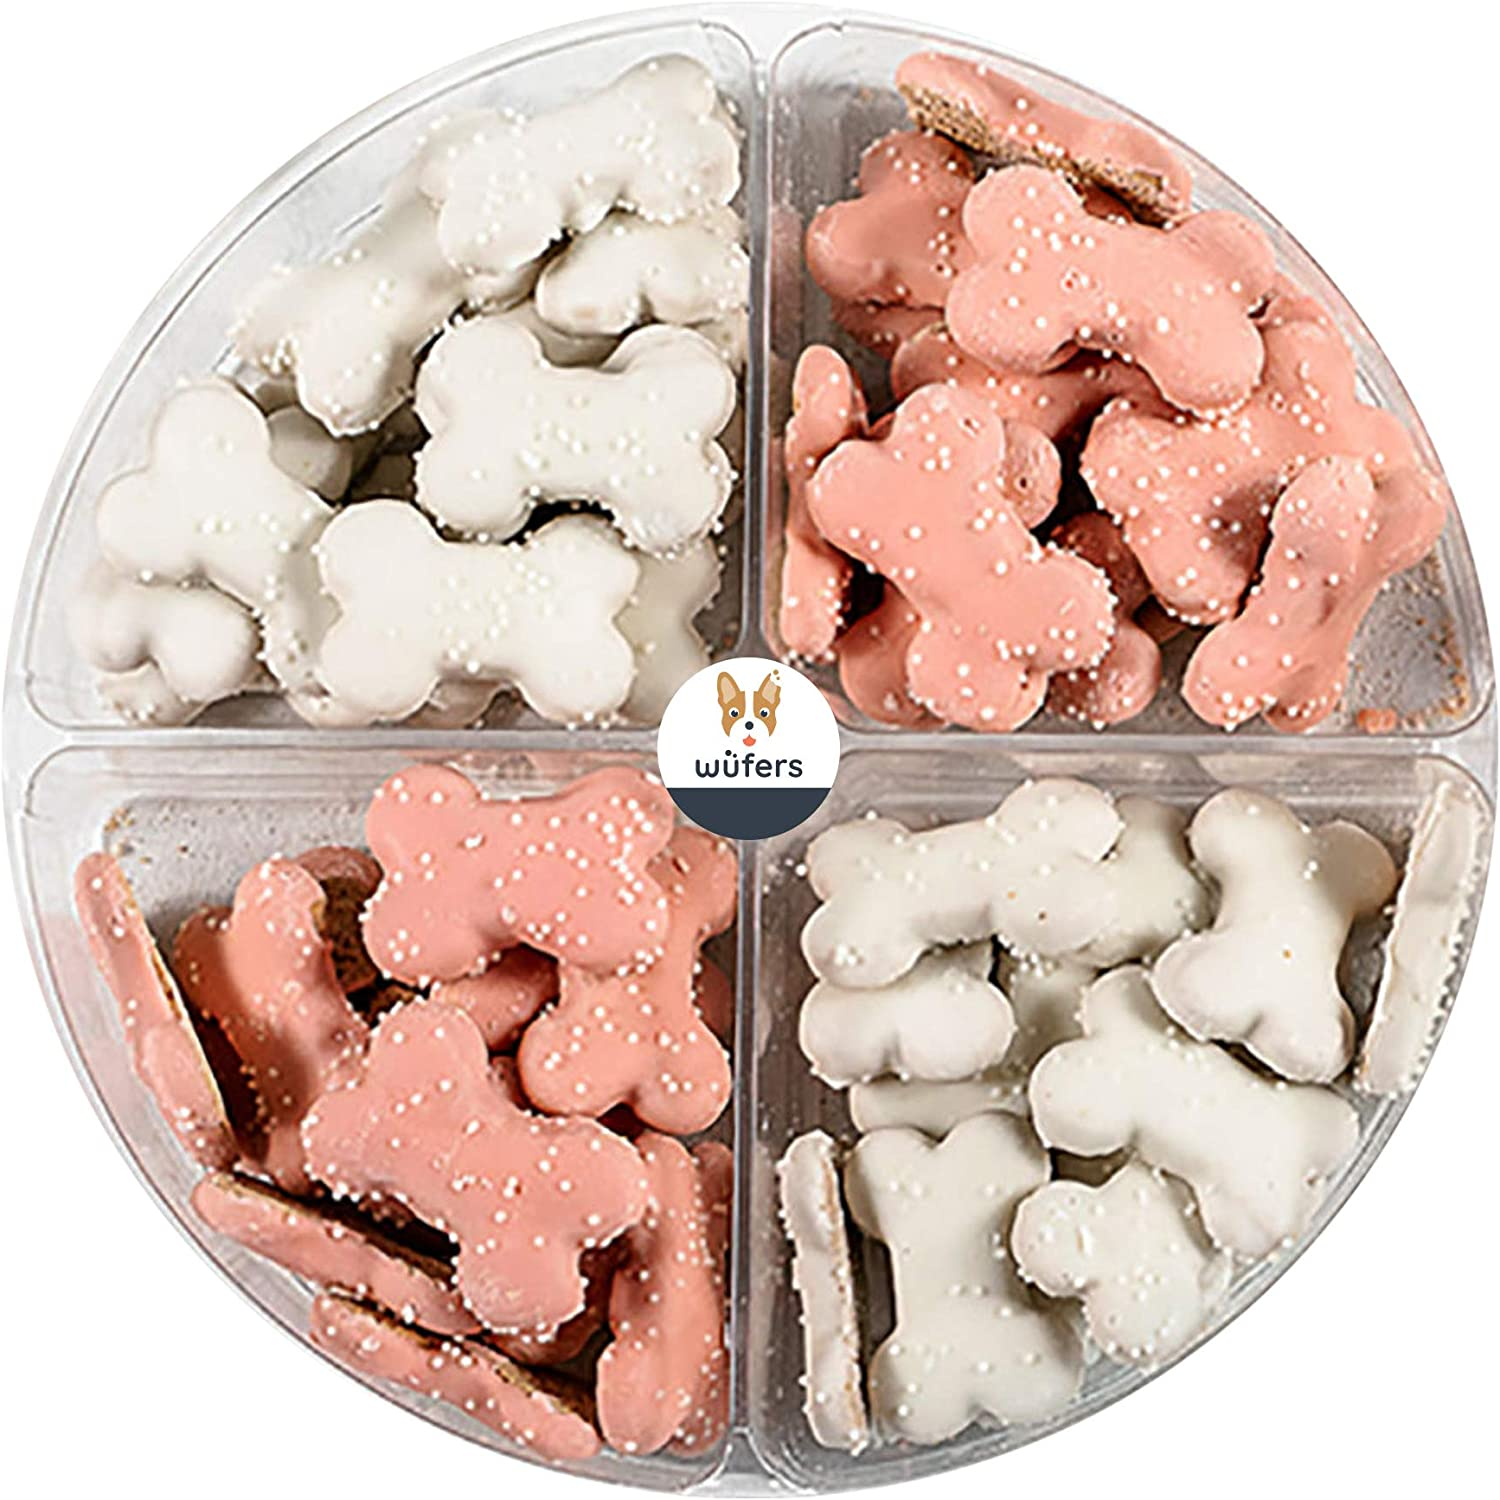 Wüfers Pink Endless Bones Dog Cookie Treats   Dog Treats for Small Dogs and Large Dogs   Frosted Dog Bone Biscuits Handmade and Hand-Decorated with Locally Sourced Ingredients